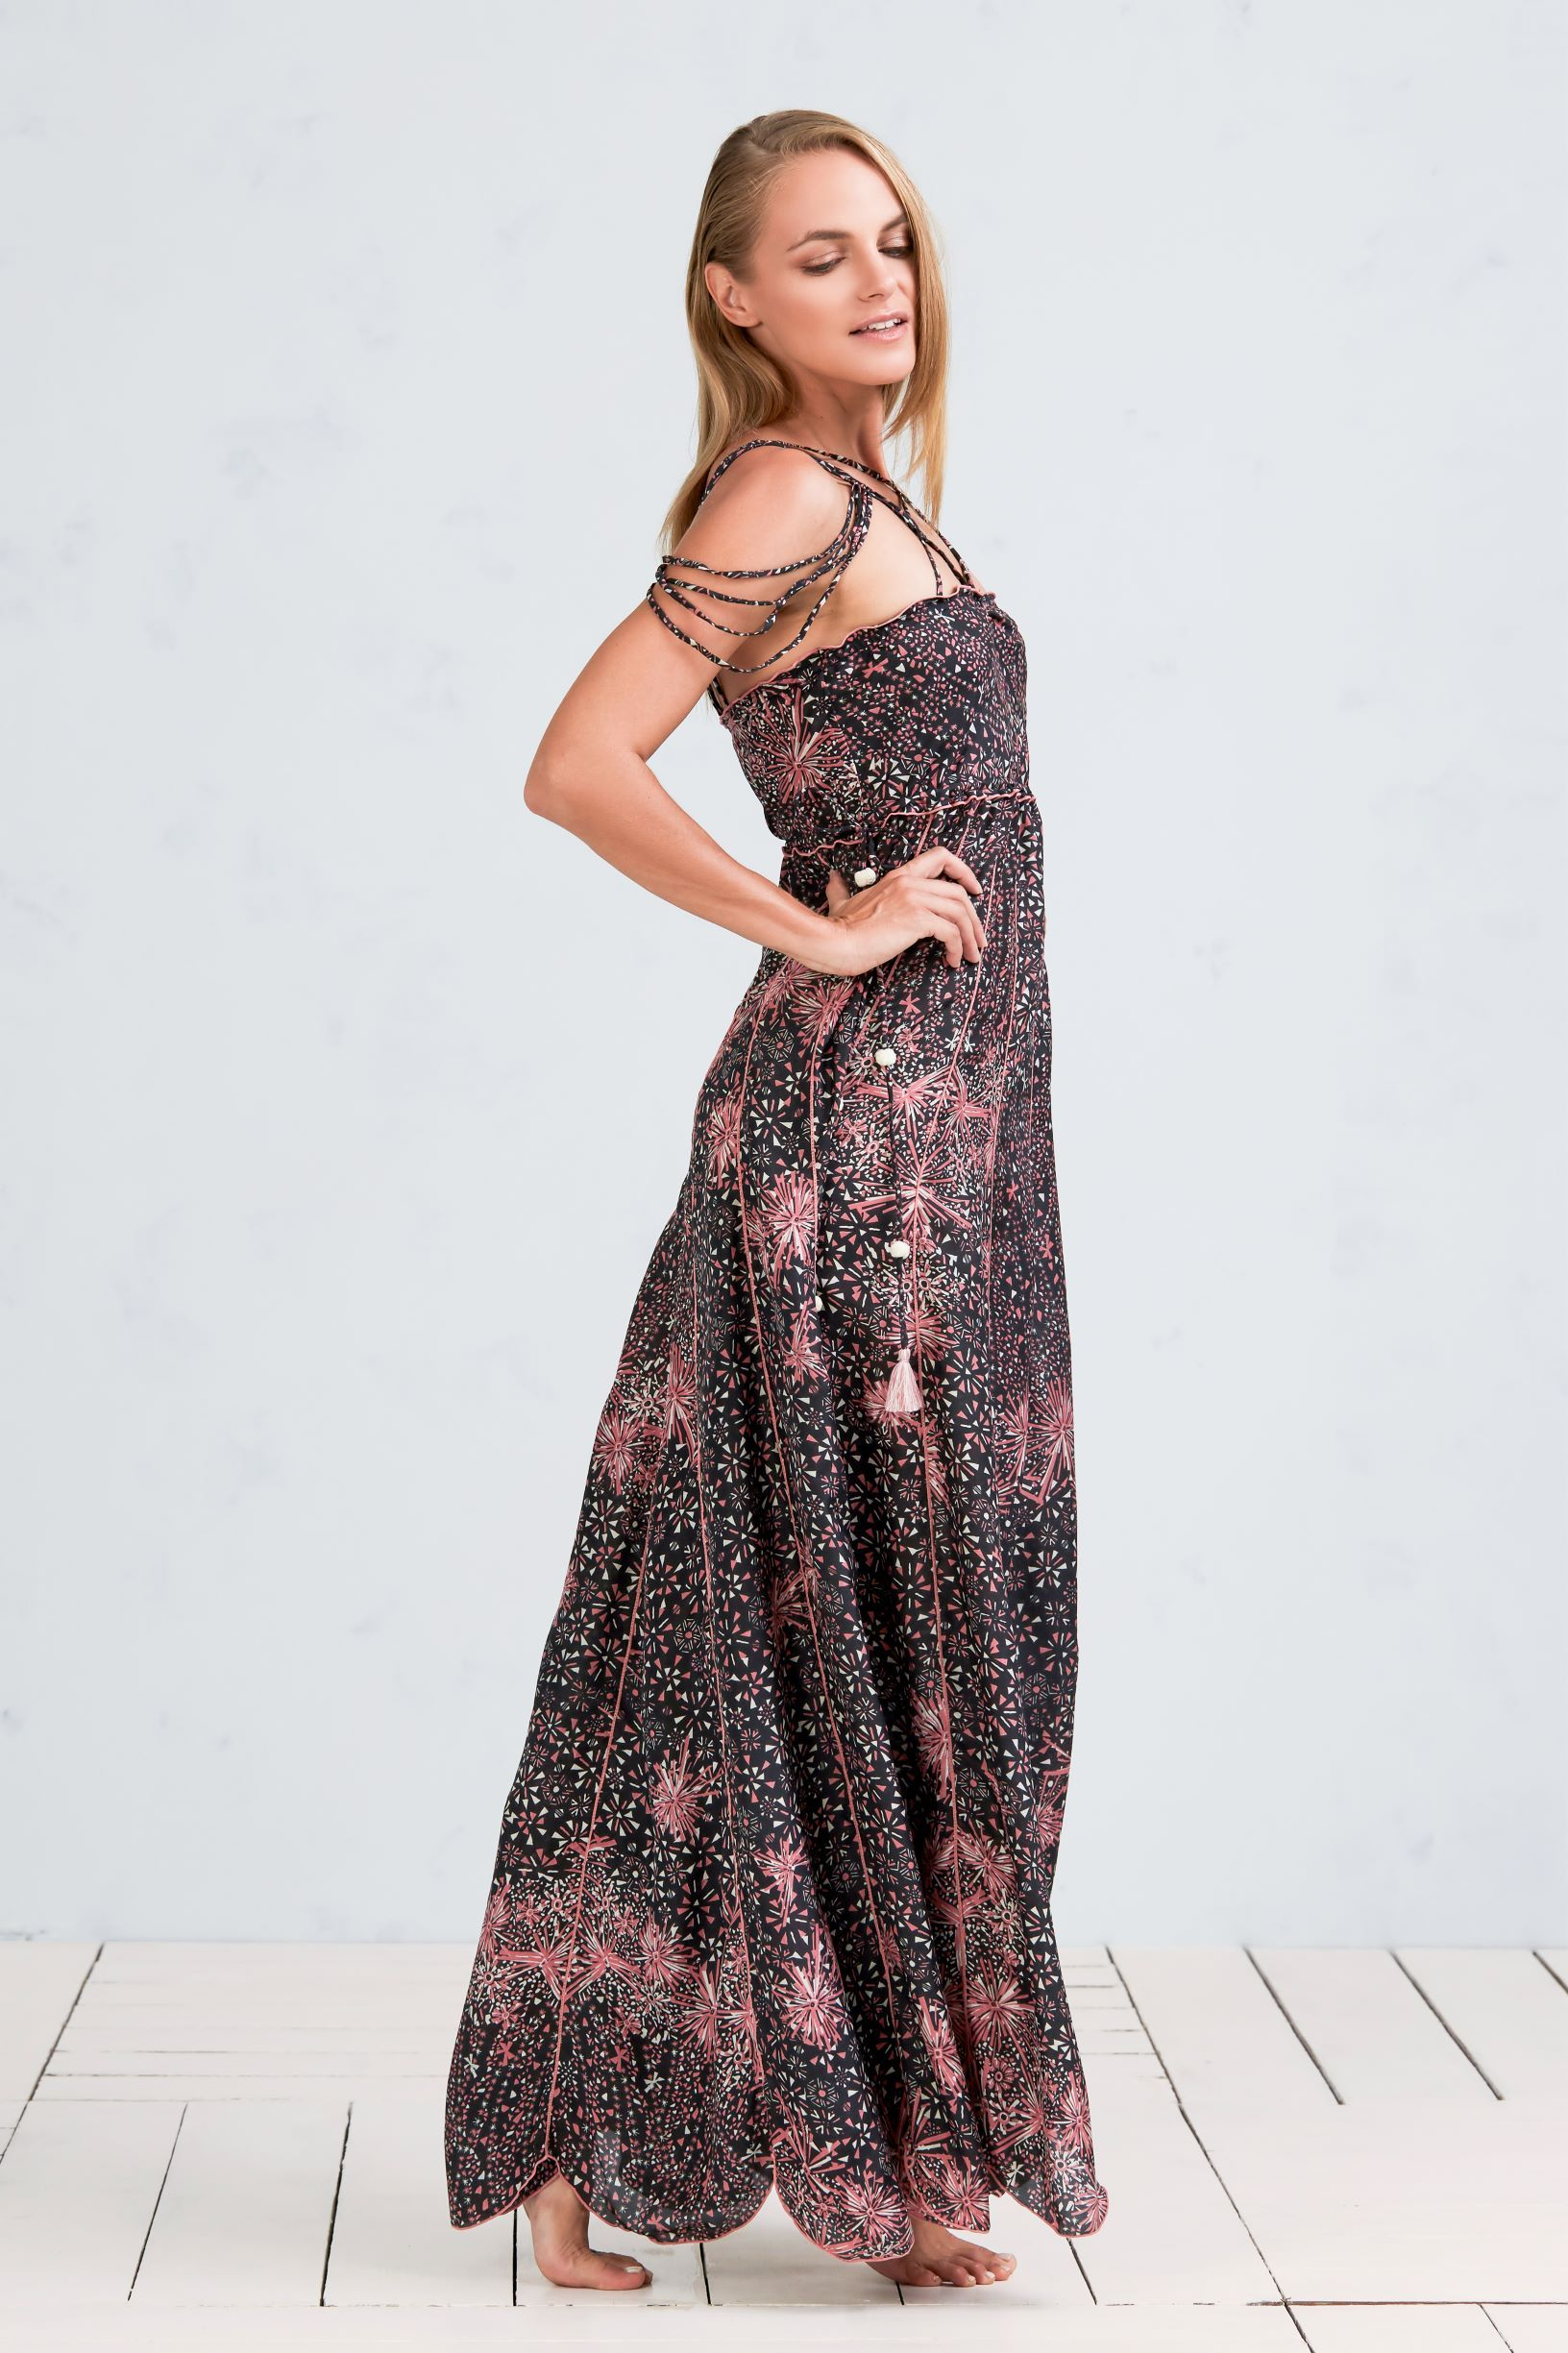 f296da6dfe ... Poupette St Barth. Our long silk Nuna dress is infused with the rare  and exotic beauty of the island